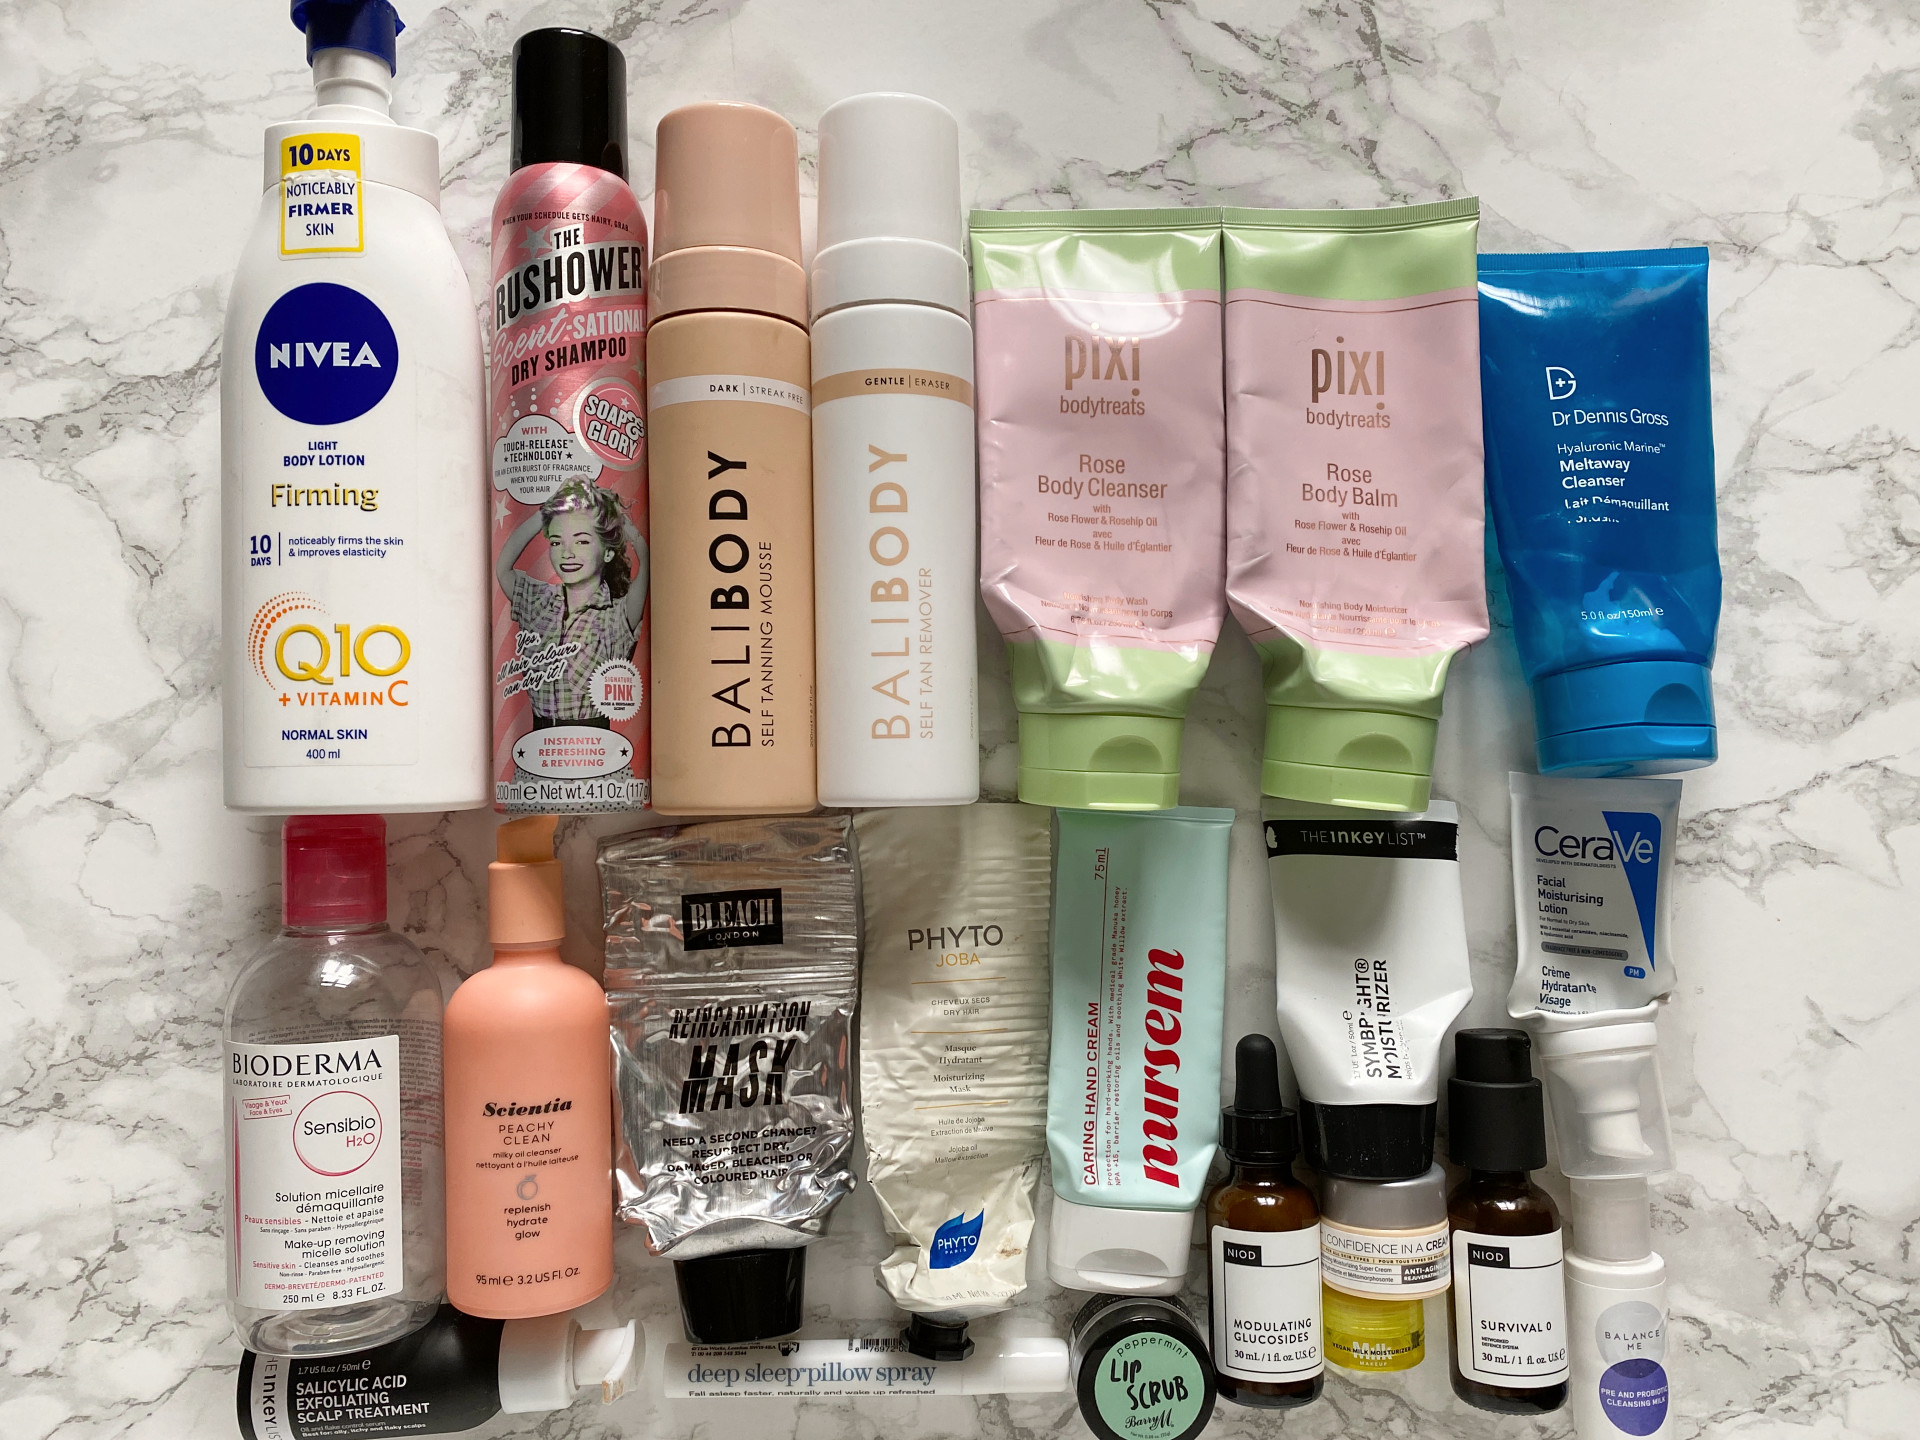 product empties and reviews